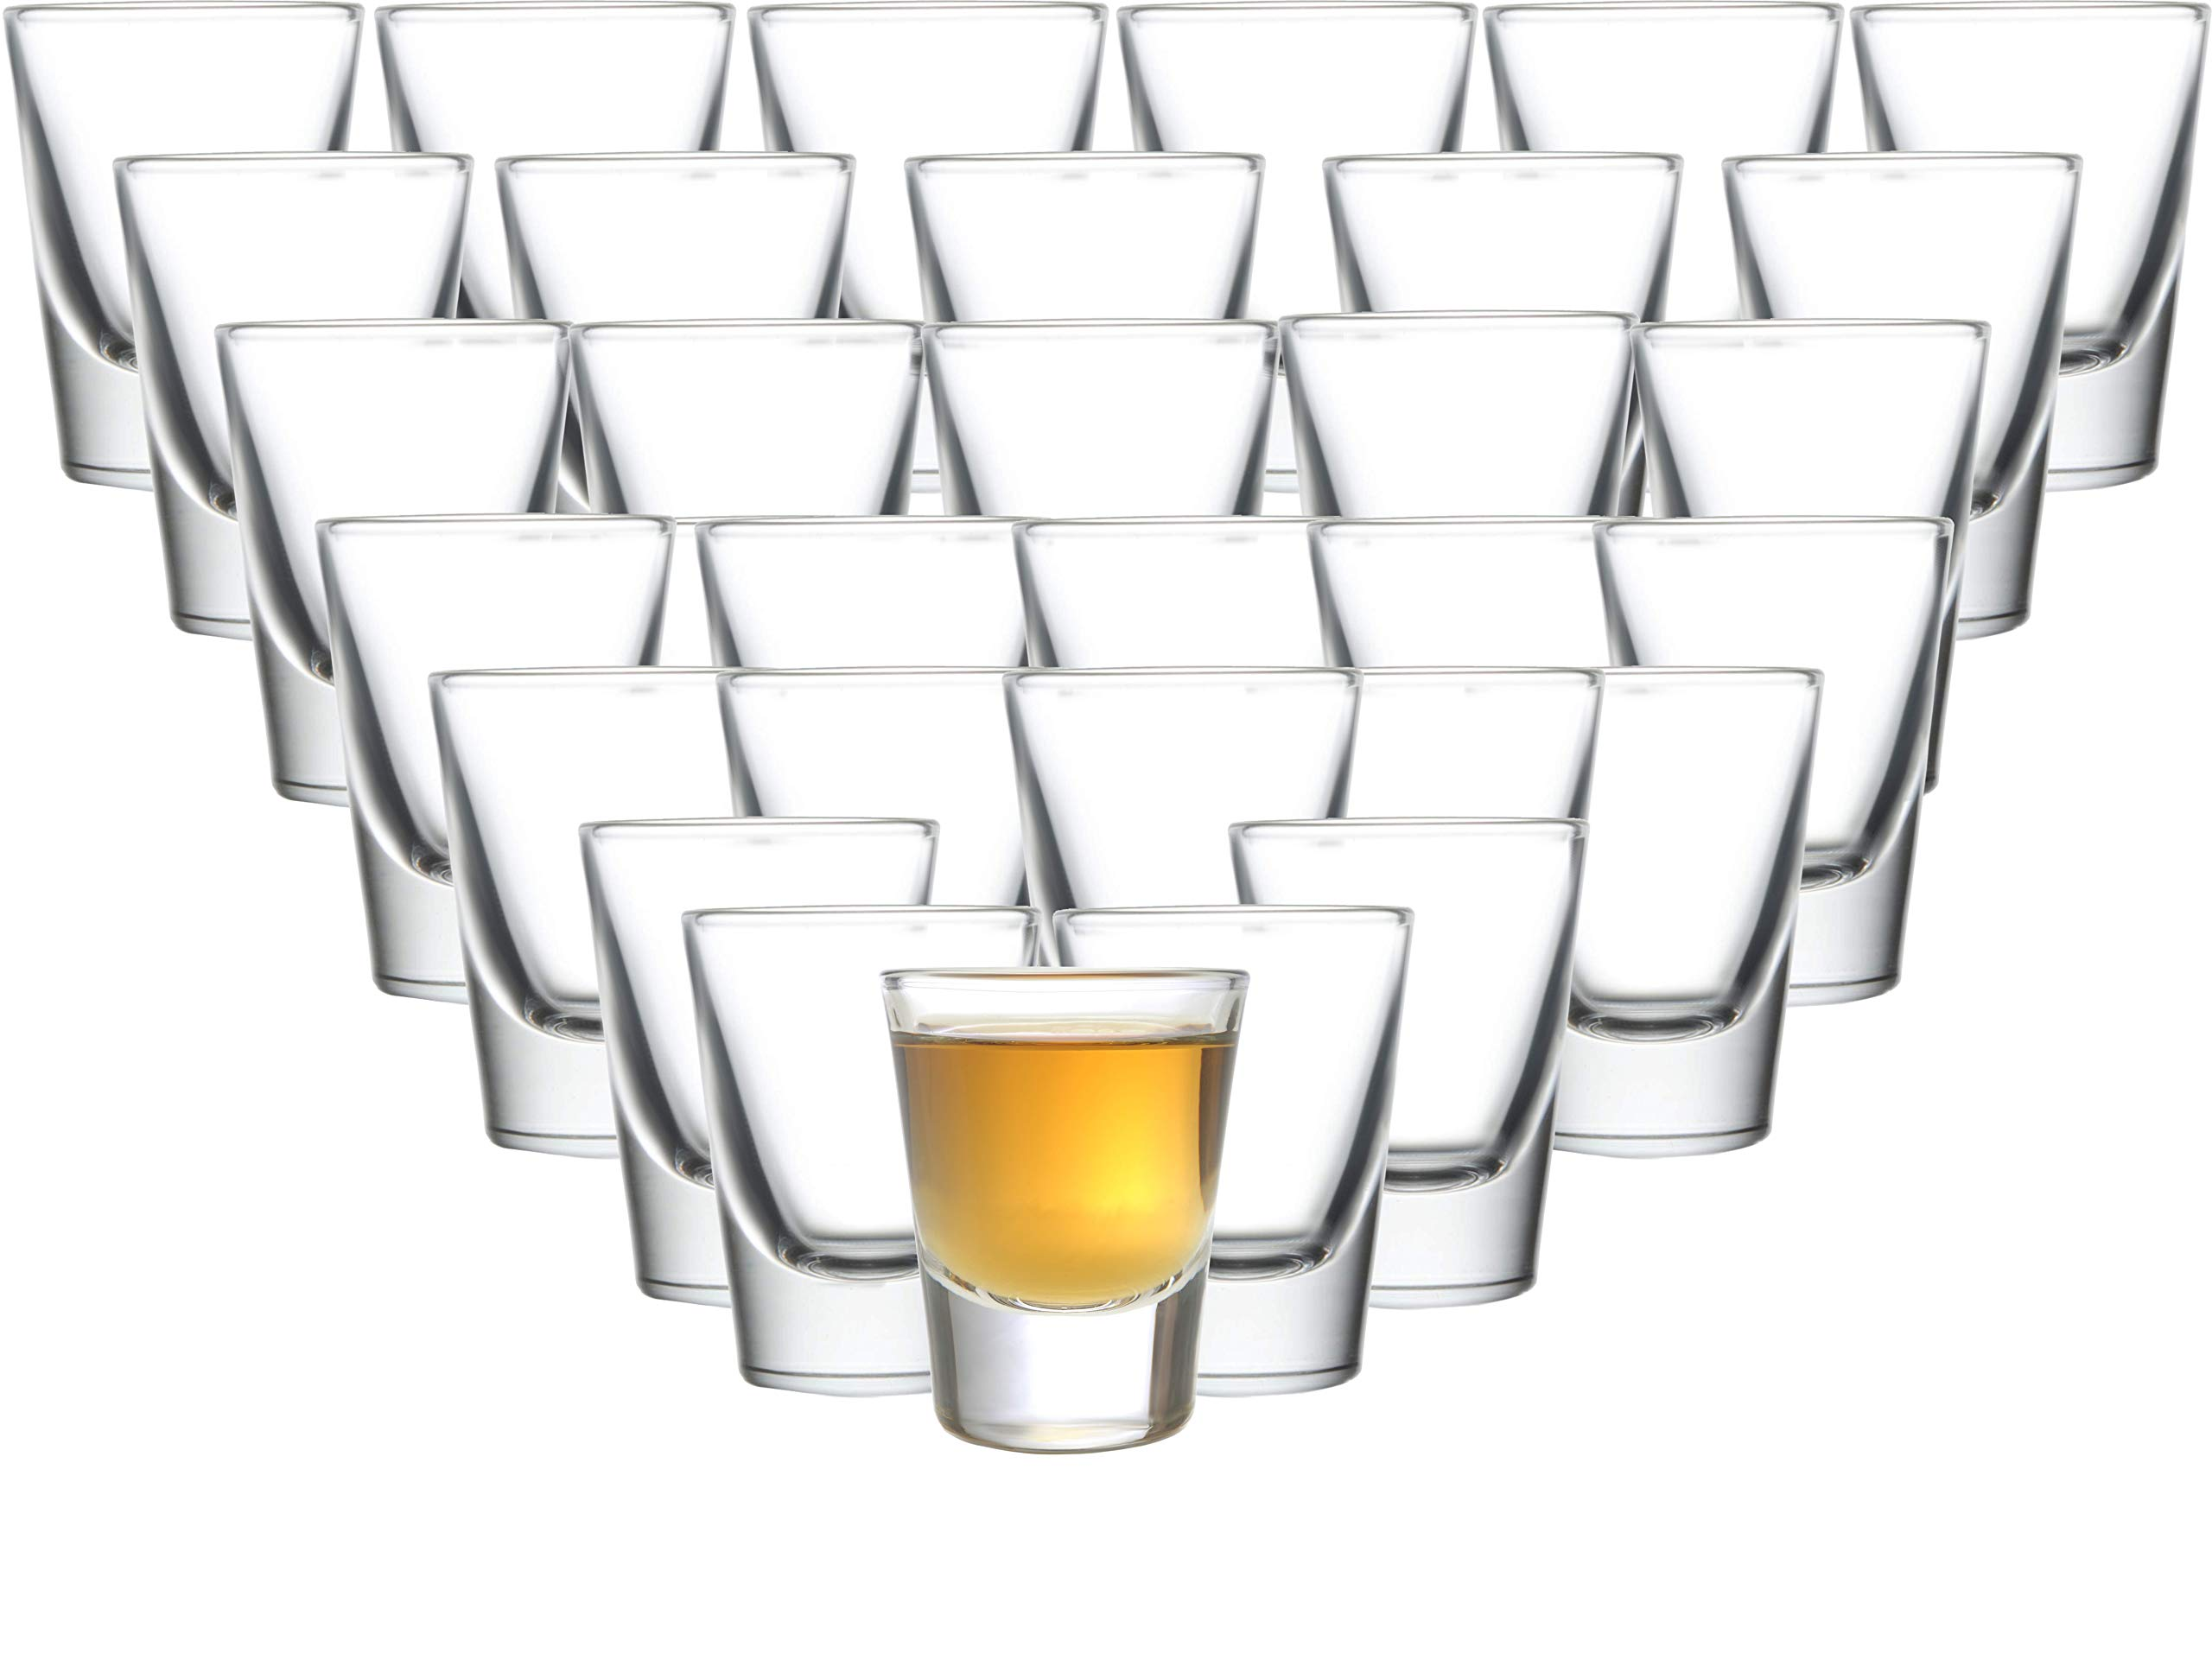 Circleware 042735 Huge Set of 36, Austria Shot Heavy Base Drinking Whiskey Glass Glassware Cups for Vodka, Brandy, Bourbon & Best Selling Liquor Beverages, Limited Edition, 36pc